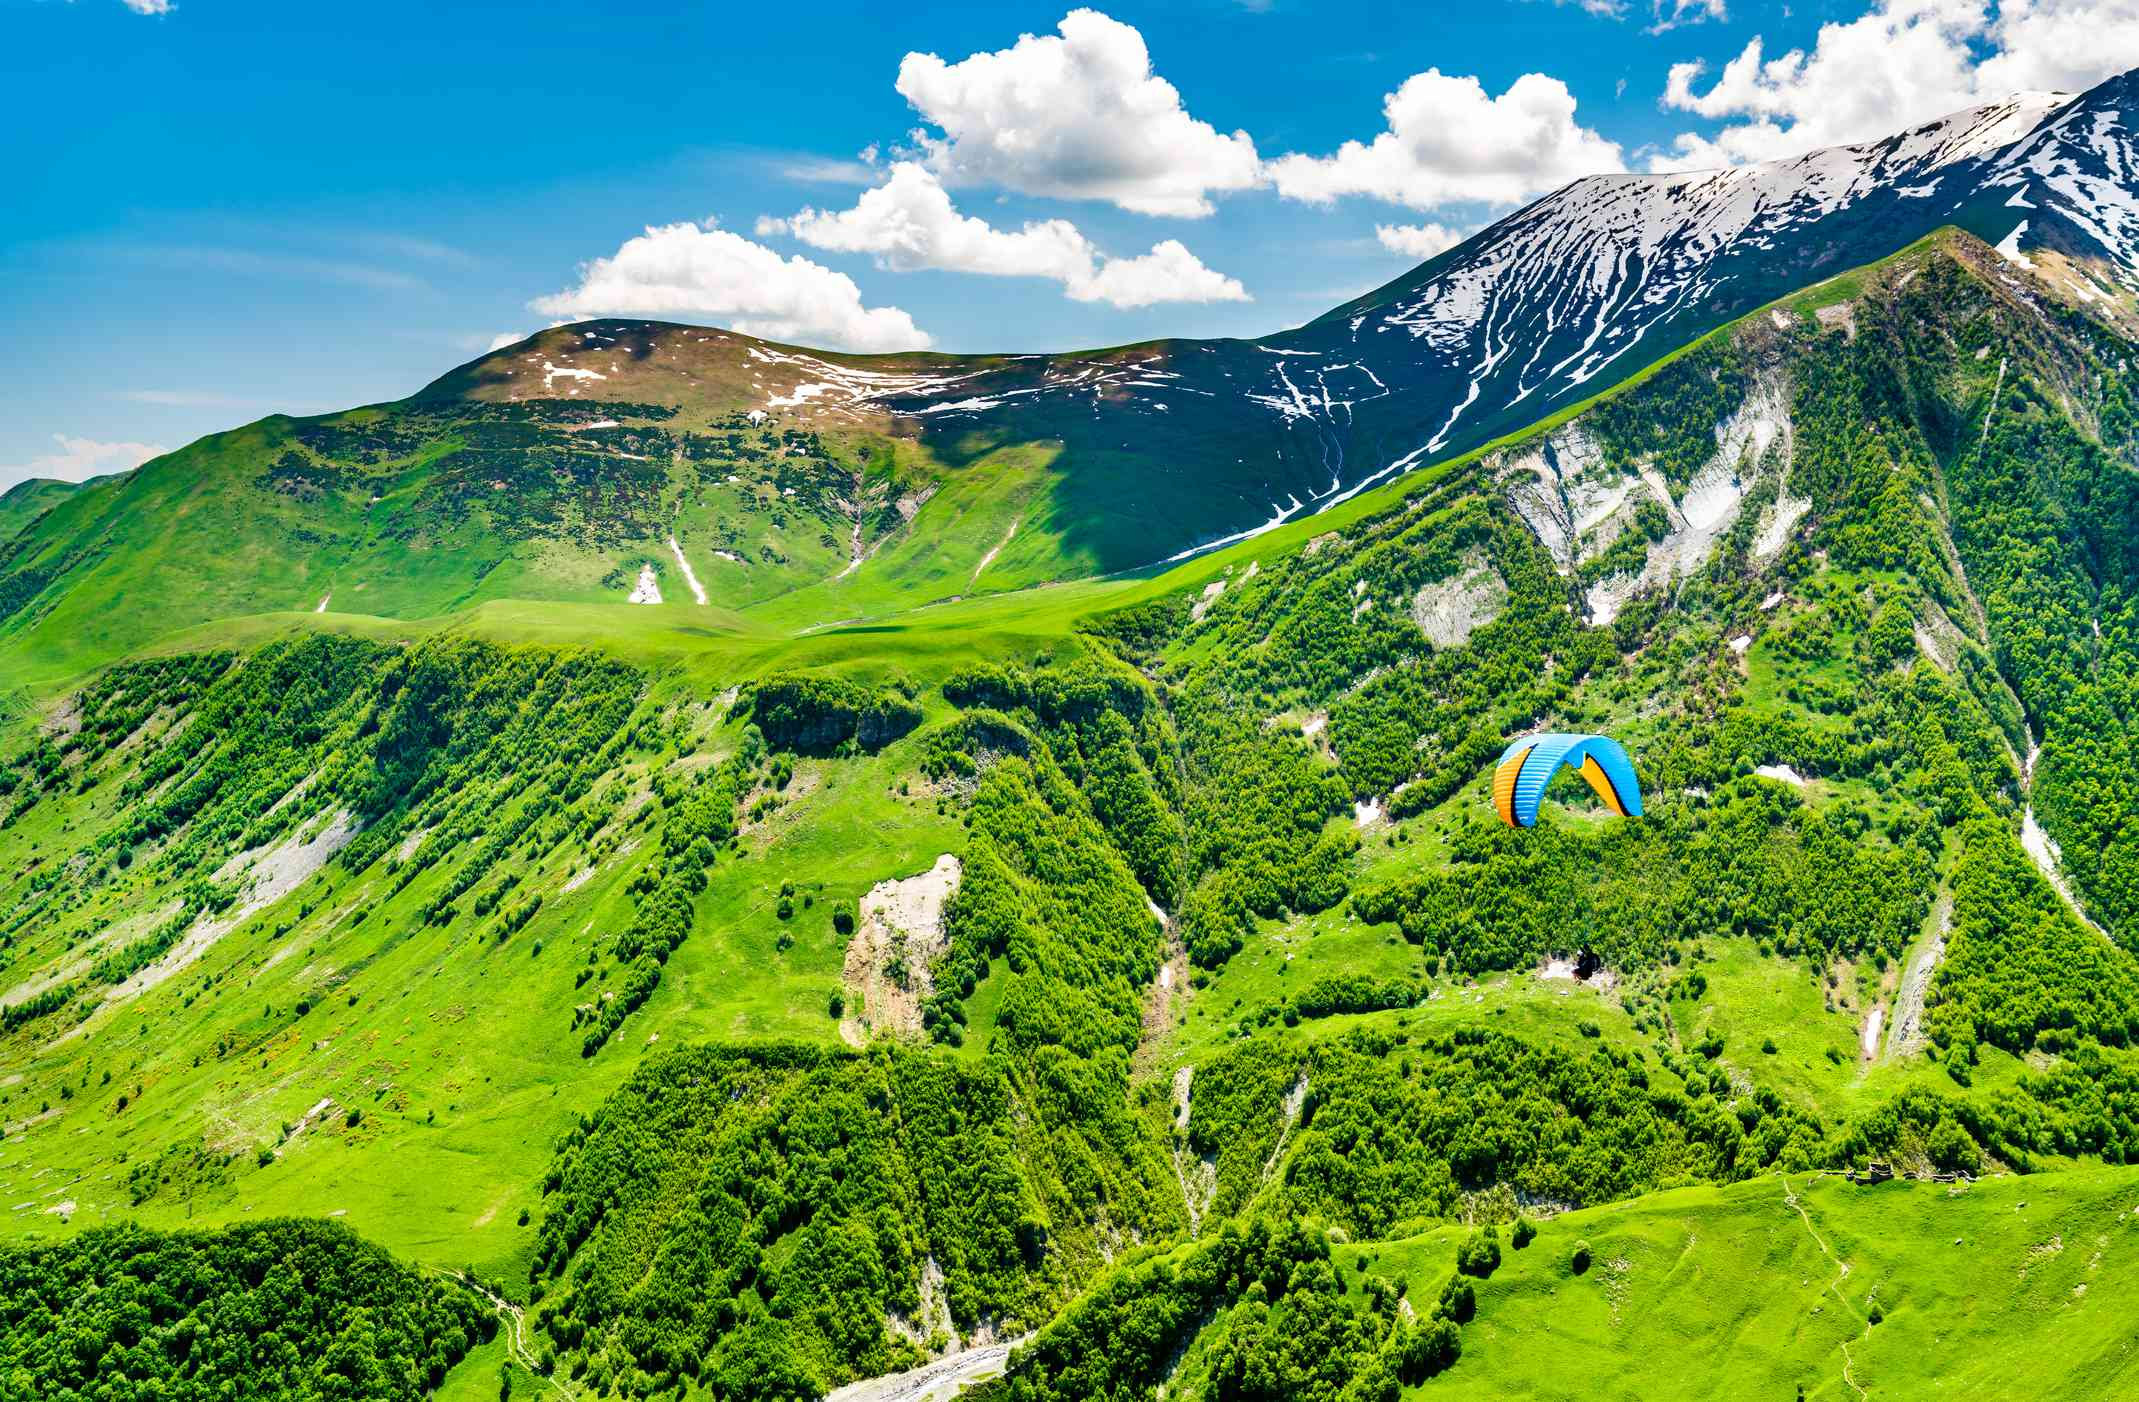 green mountains with blue paraglider in mid ground